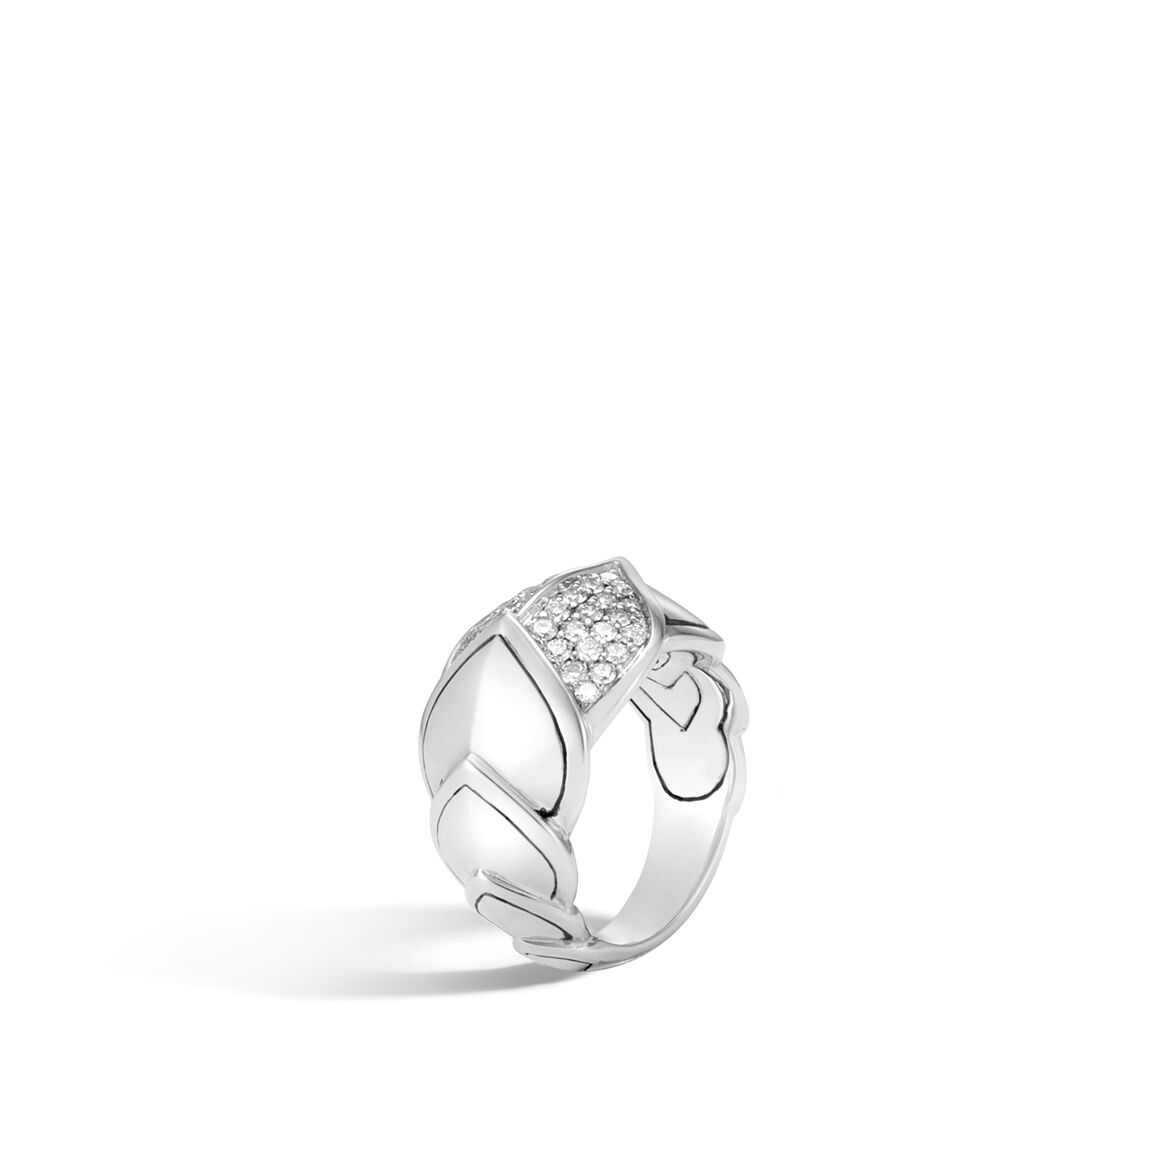 Legends Naga 15MM Ring in Silver with Diamonds